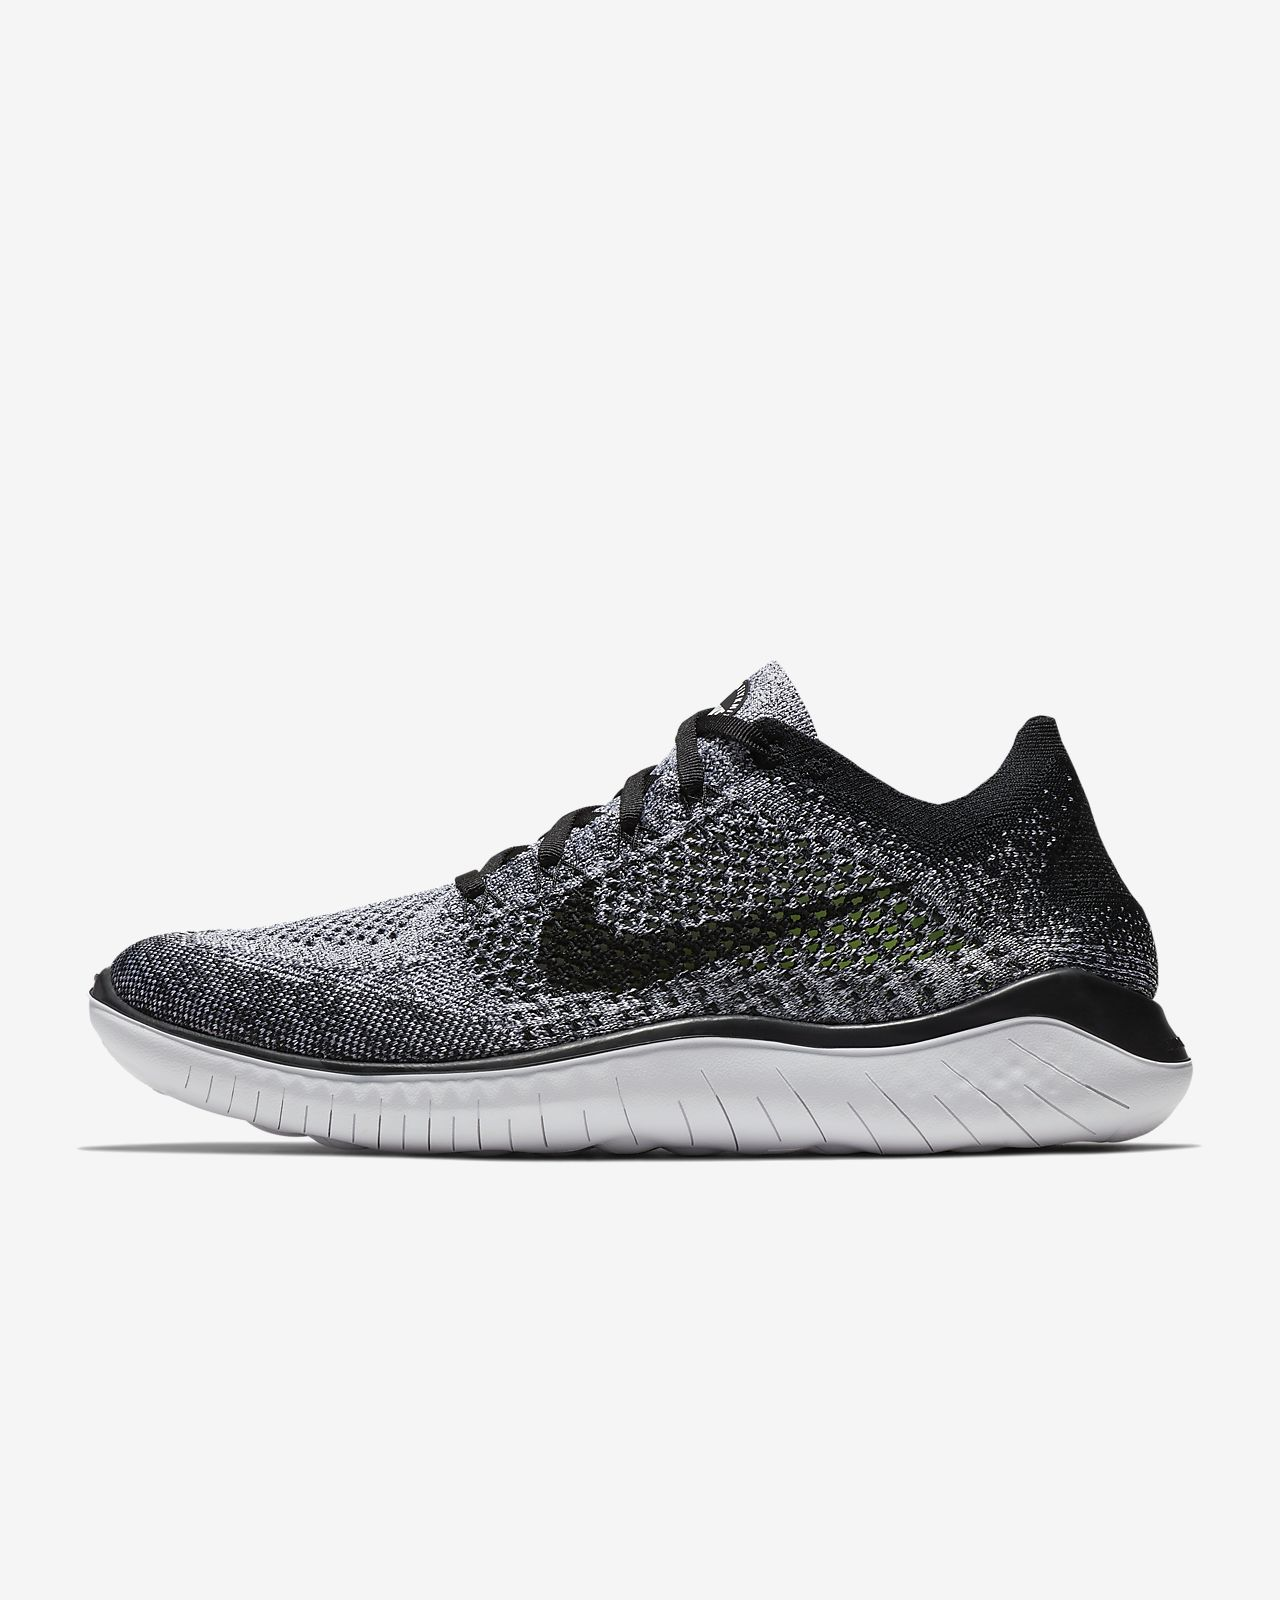 reputable site ddcf3 2fe6a Mens Running Shoe. Nike Free RN Flyknit 2018